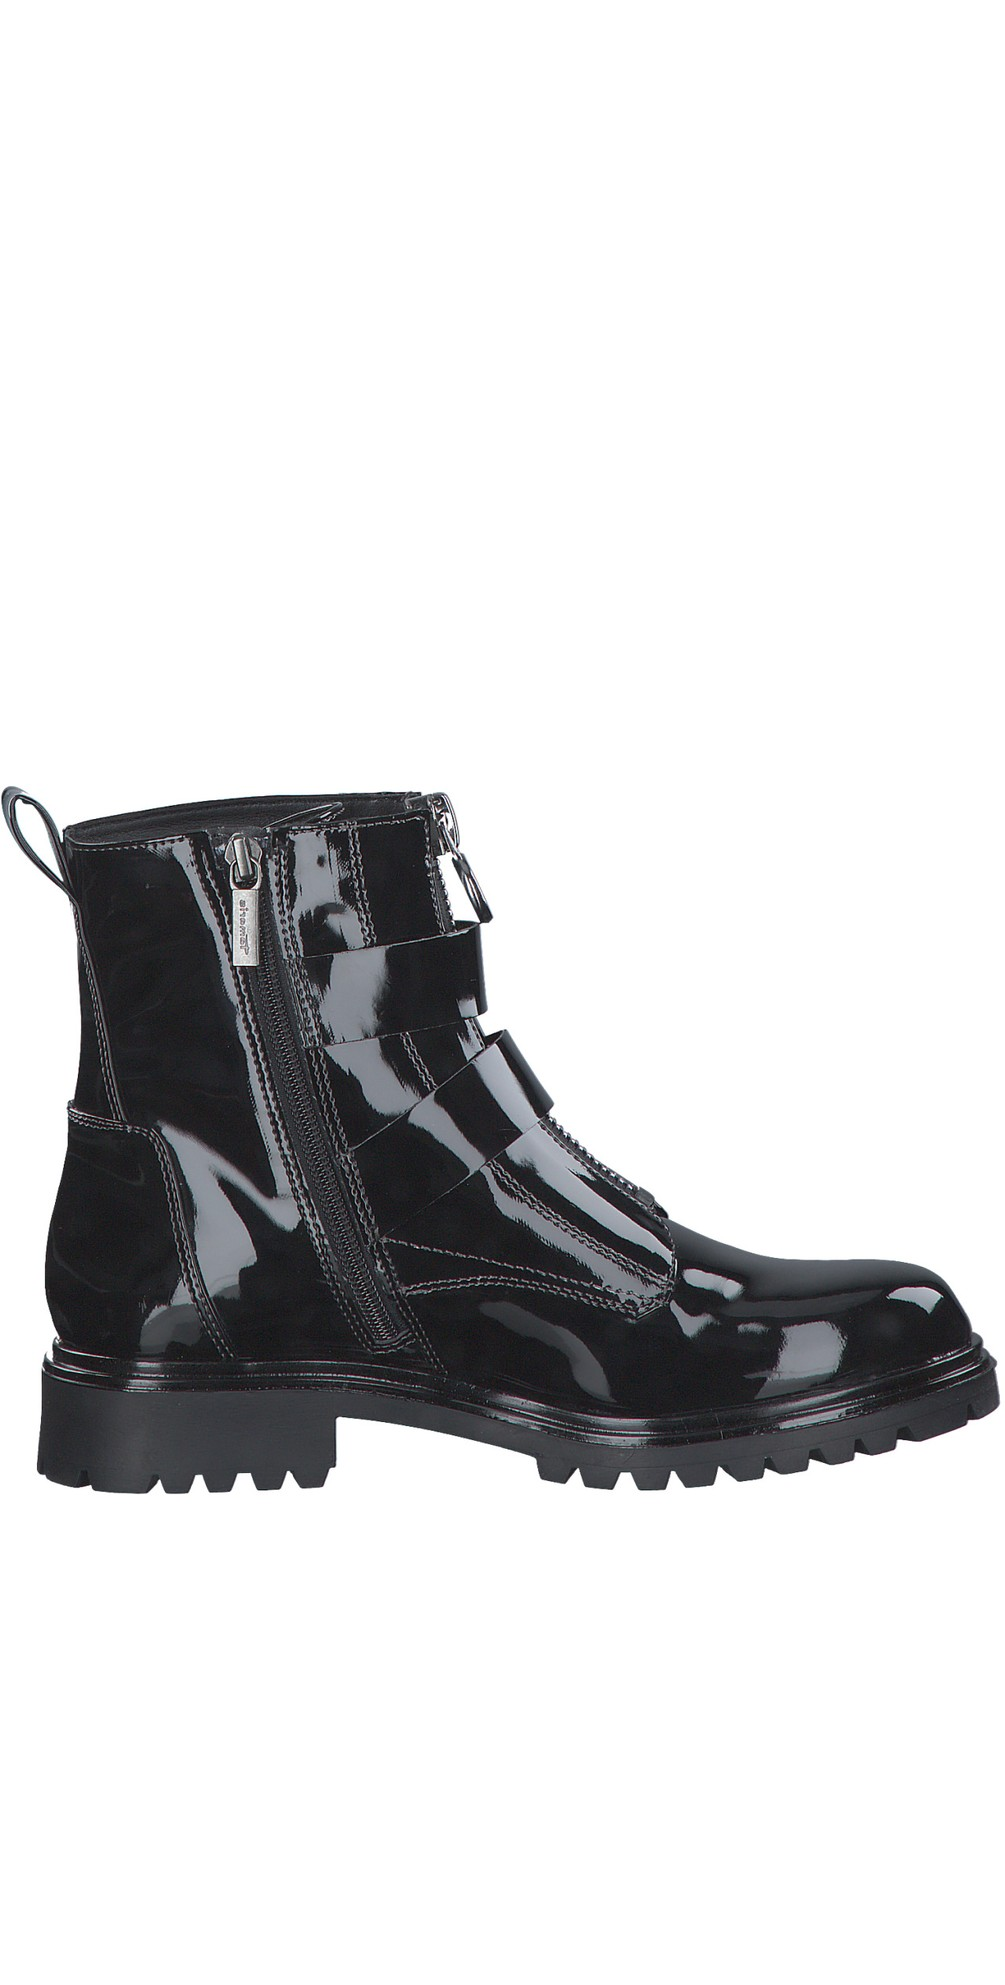 Soul buckle Military Style Ankle Boot main image